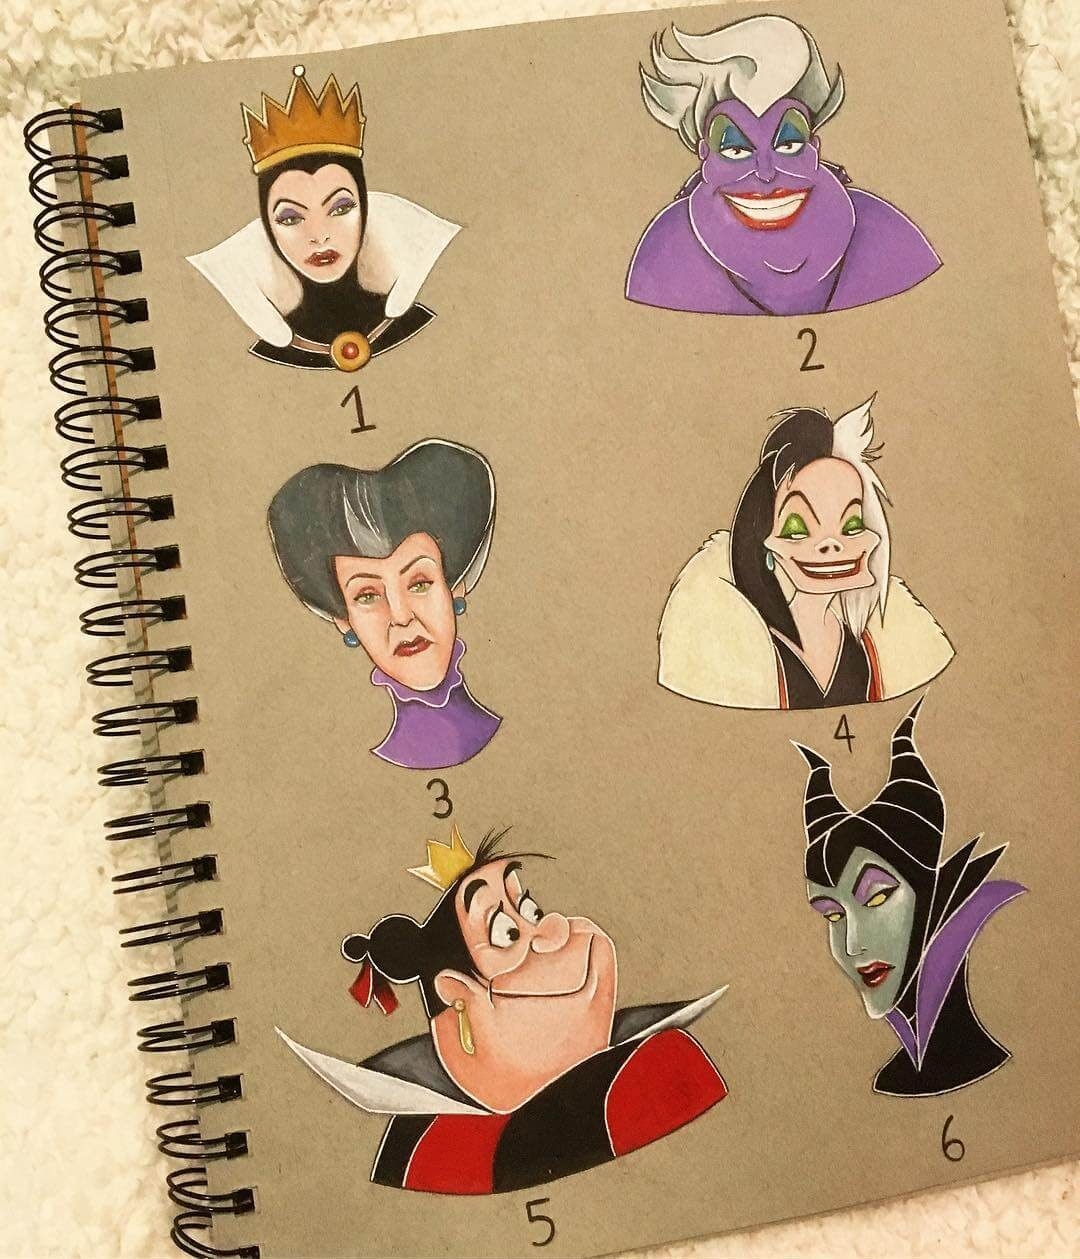 04-Ursula-Malificent-Cruella-Devil-Tabitha-Cartoon-and-Animation-Characters-in-Drawings-www-designstack-co